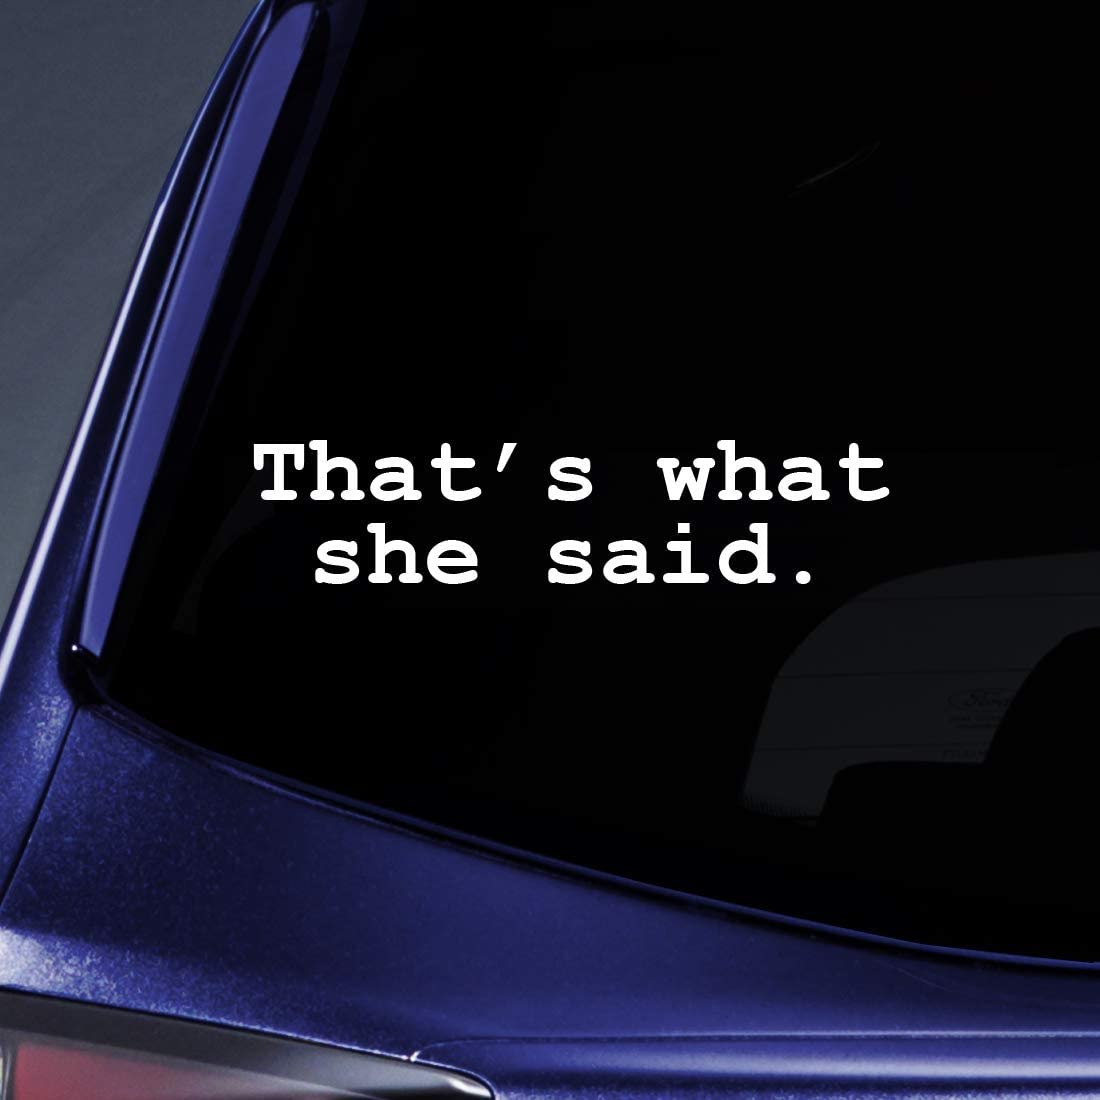 Bargain Max Decals - That's What She Said - Office Sticker Decal Notebook Car Laptop 8